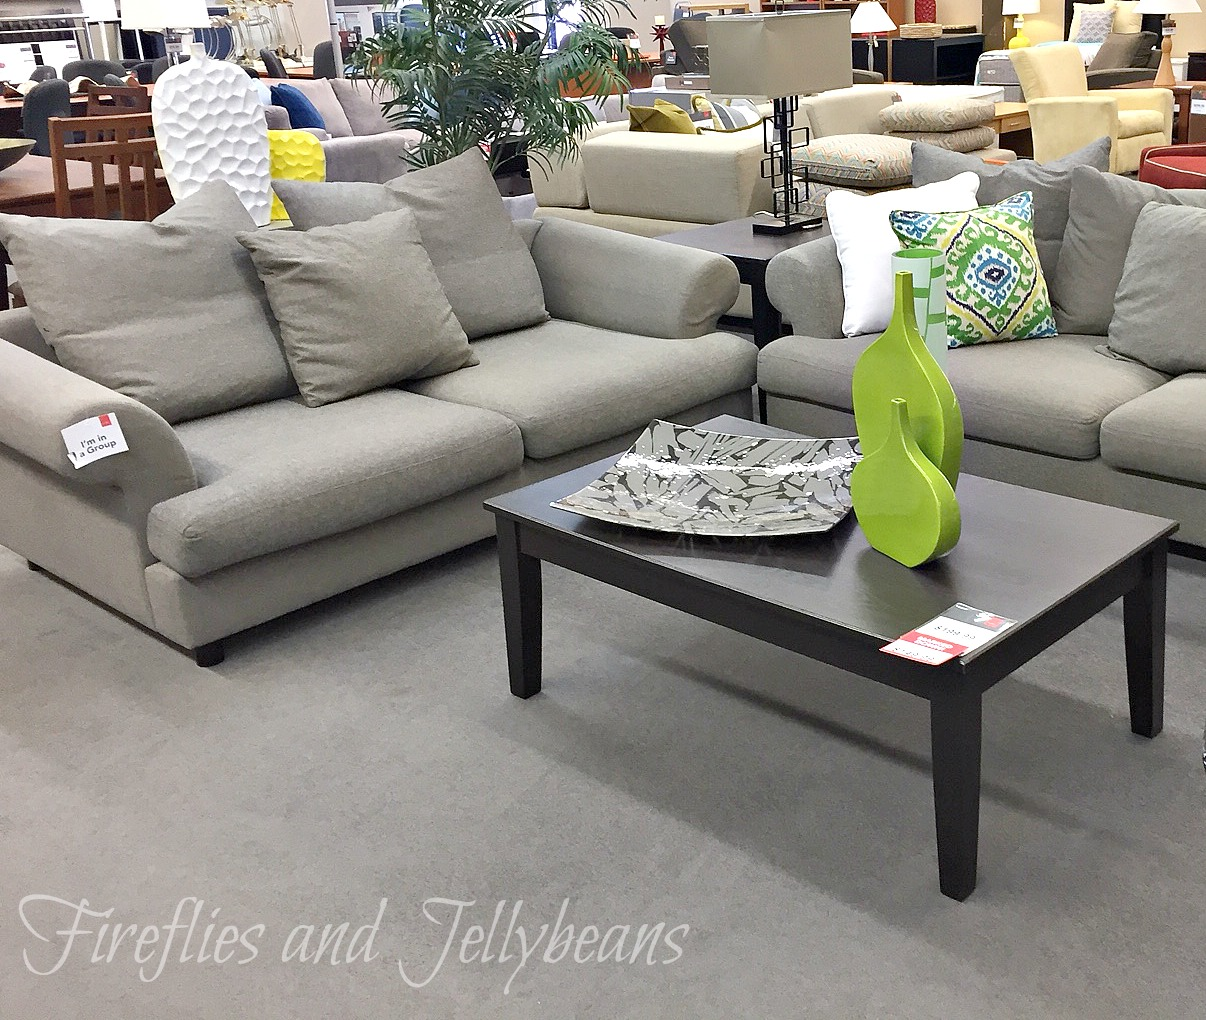 Fireflies and Jellybeans  Affordable Furniture  CORT Clearance Center Even though it is a clearance center they do not have furniture from last  season  Everything is very in style and up to date  I saw several piece  that I